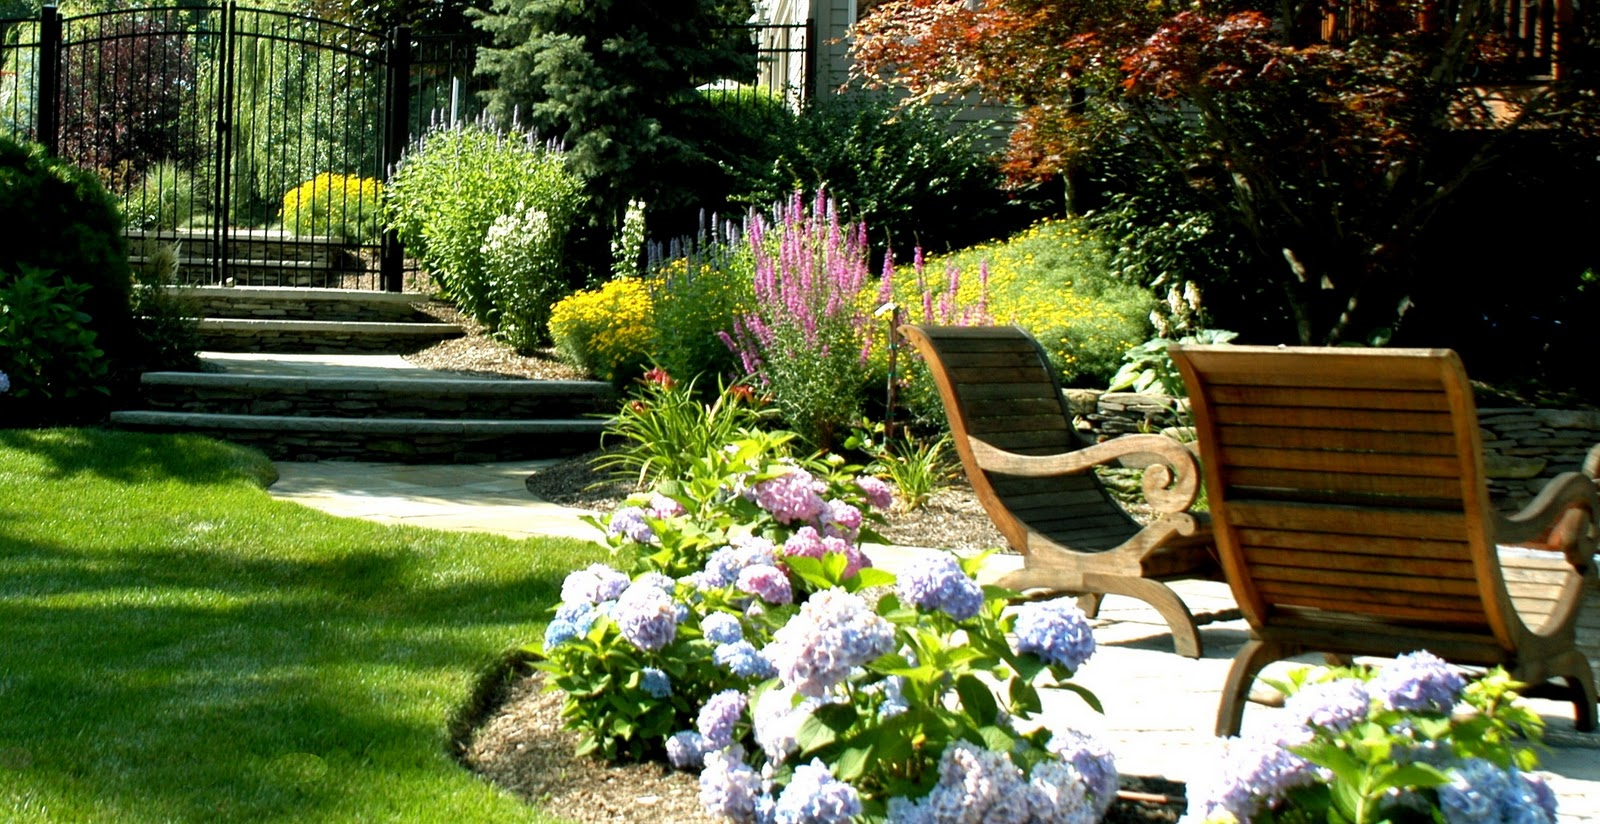 Hightechlandscapes new jersey landscape design for New garden design